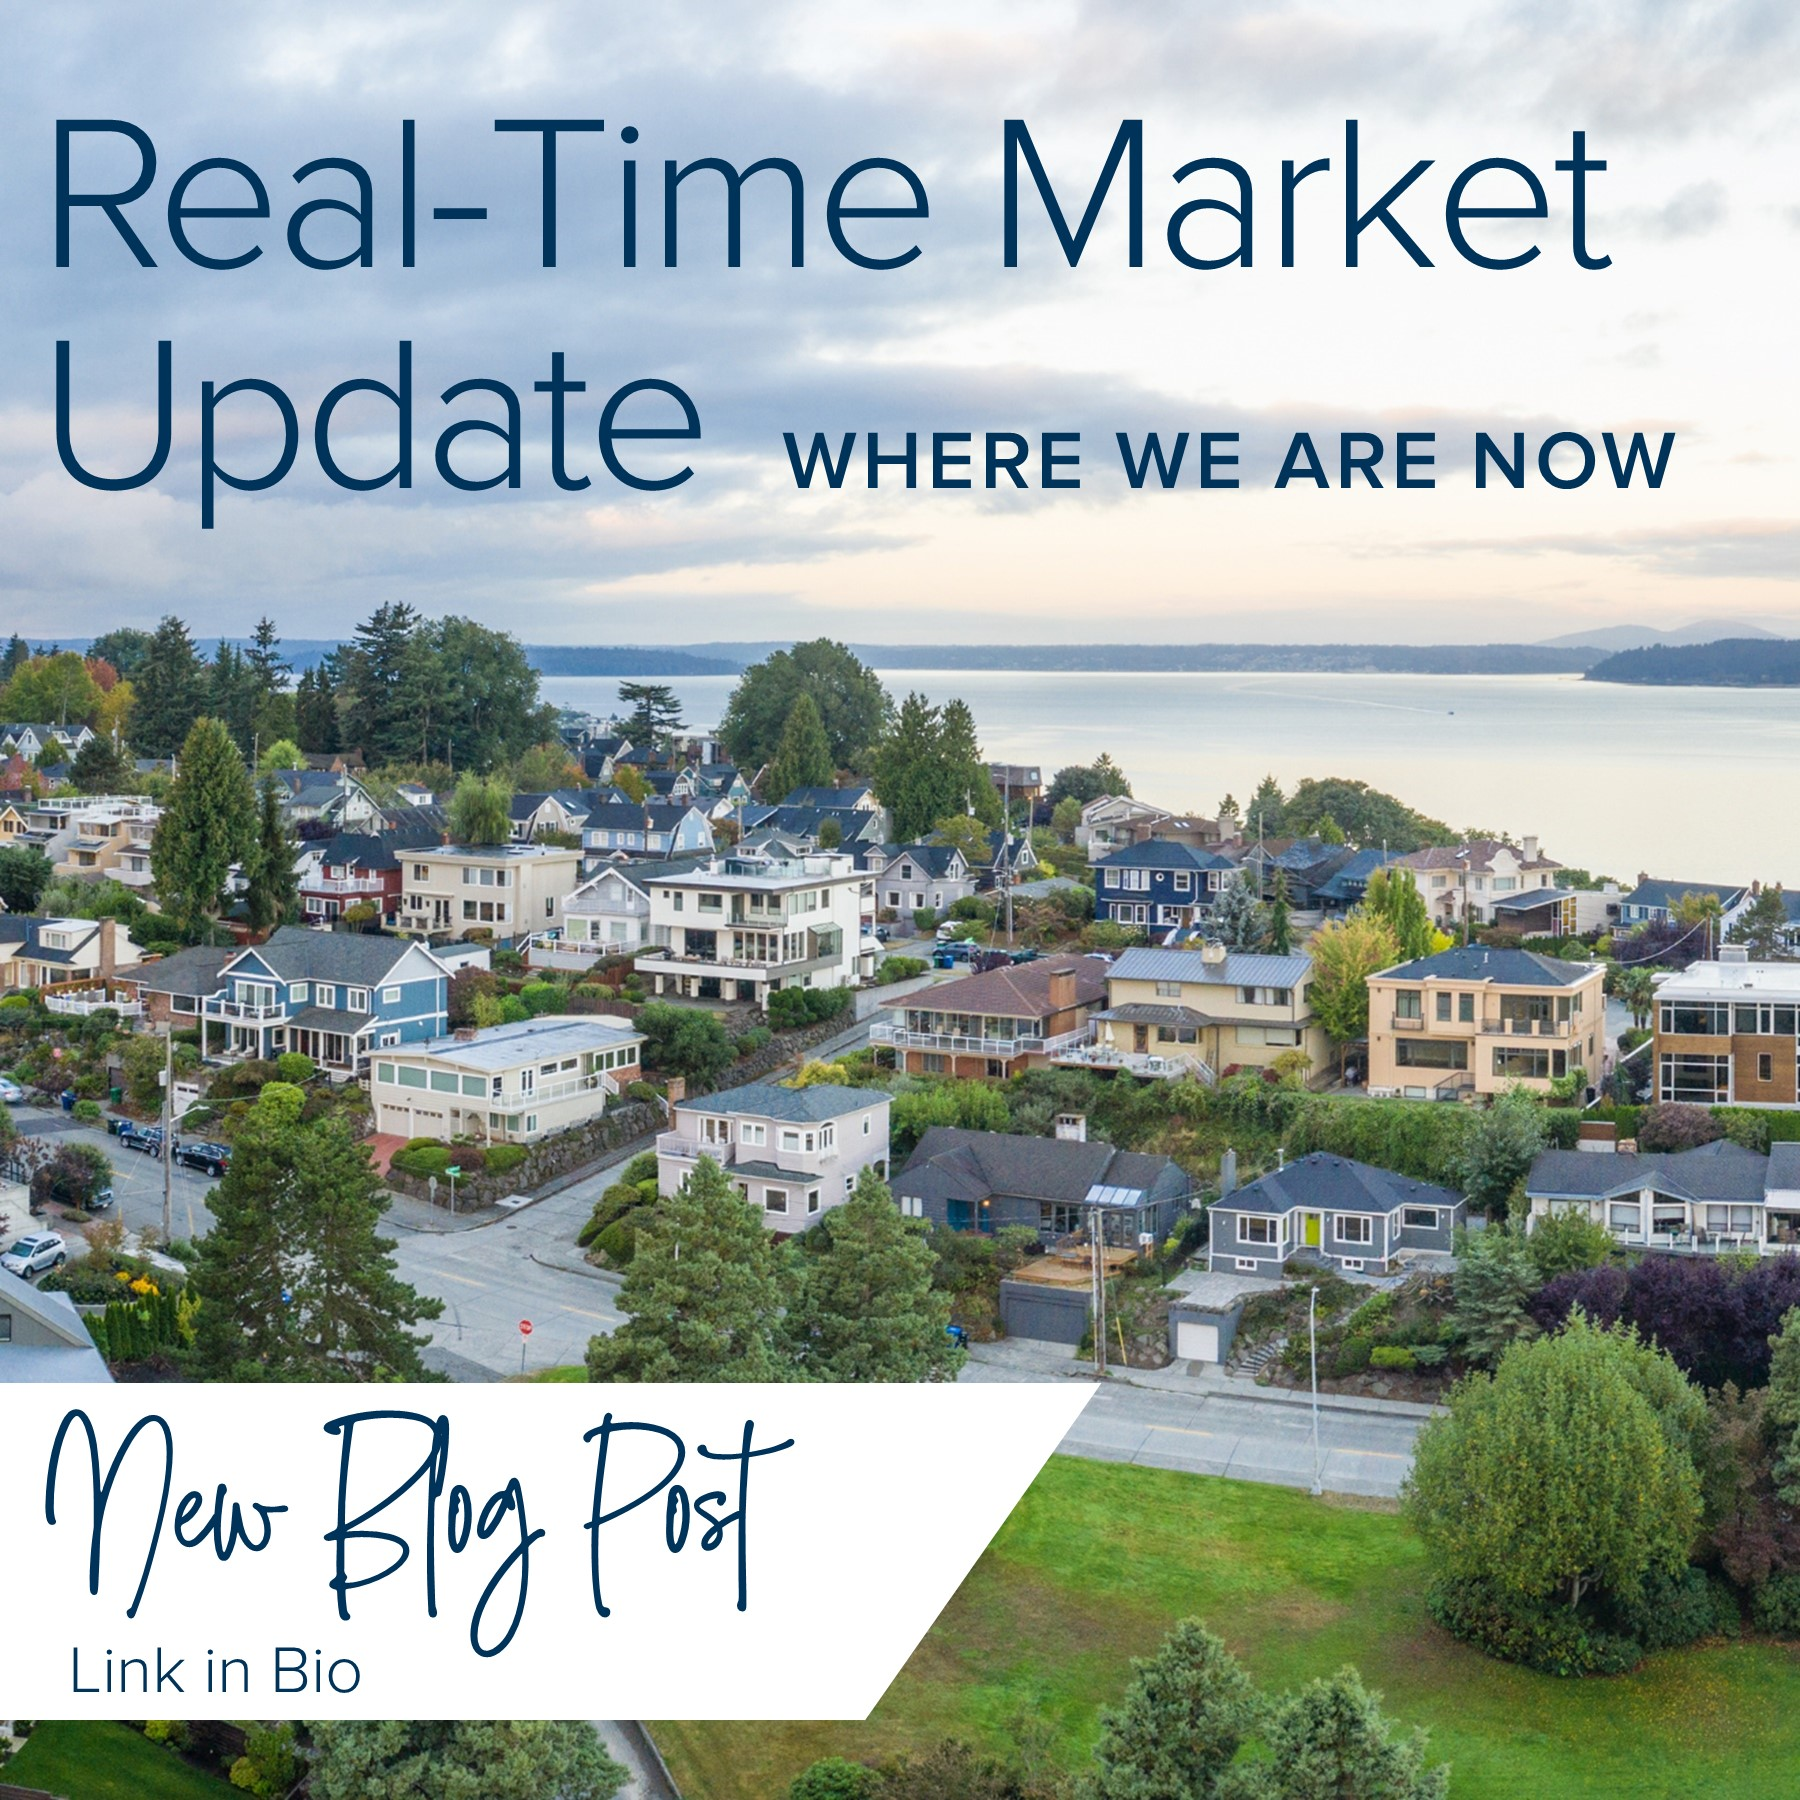 Newsletter - Real-Time Market Update: Where We Are Now February 2020